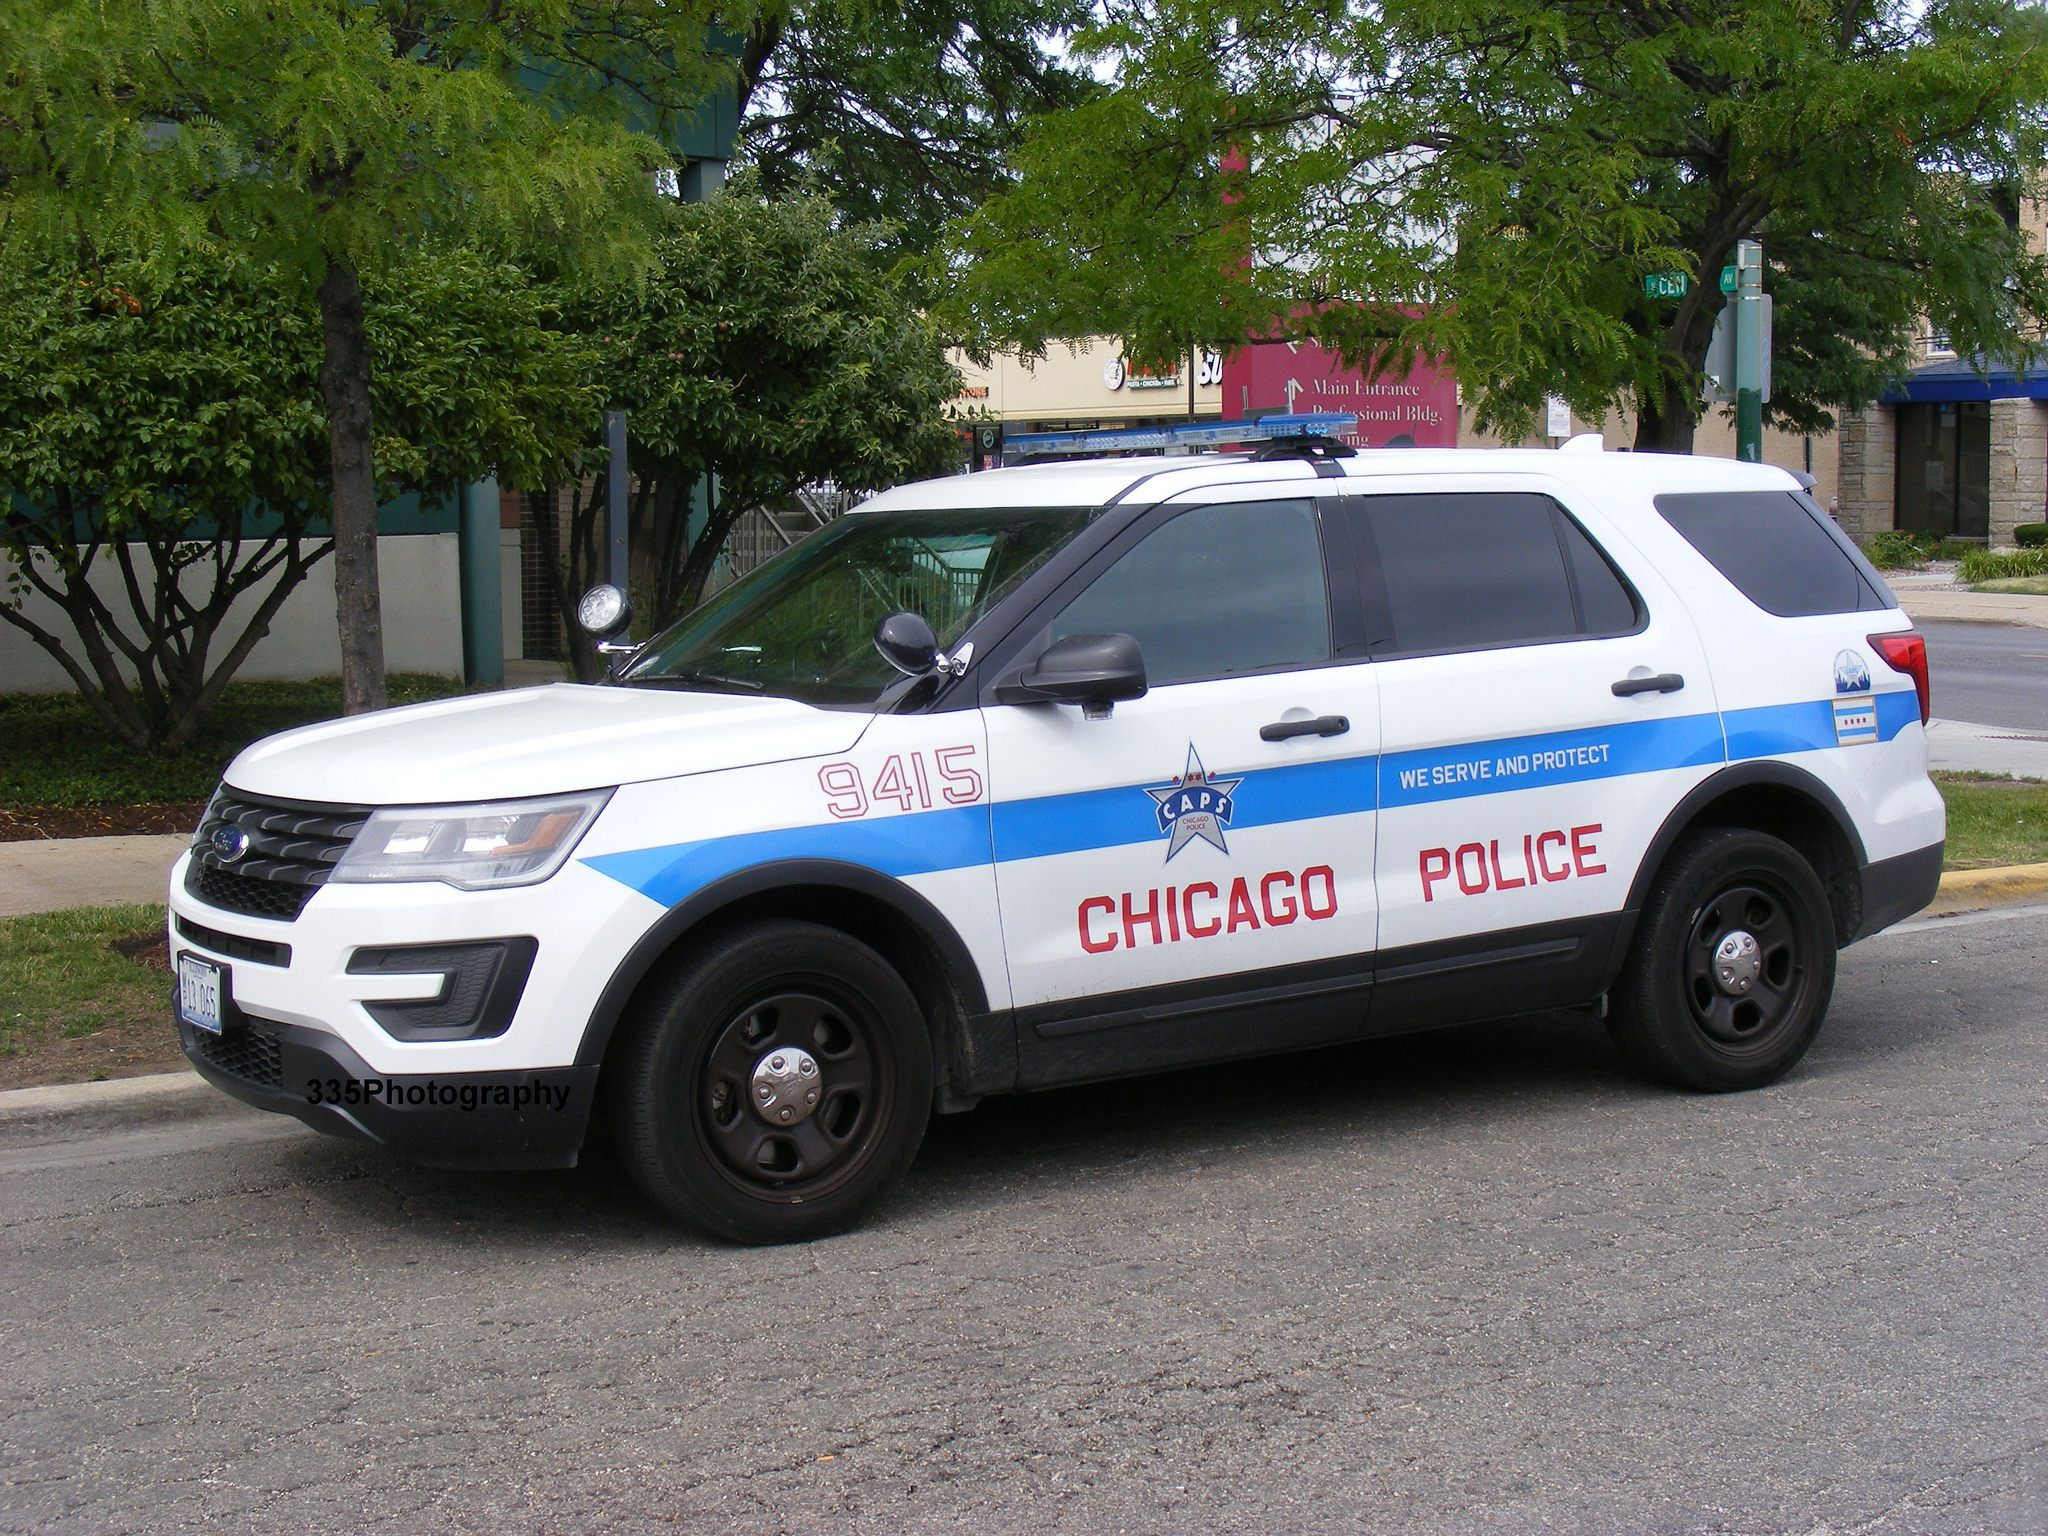 Chicago Il Police 9415 Ford Interceptor Utility Ford Police Police Emergency Vehicles